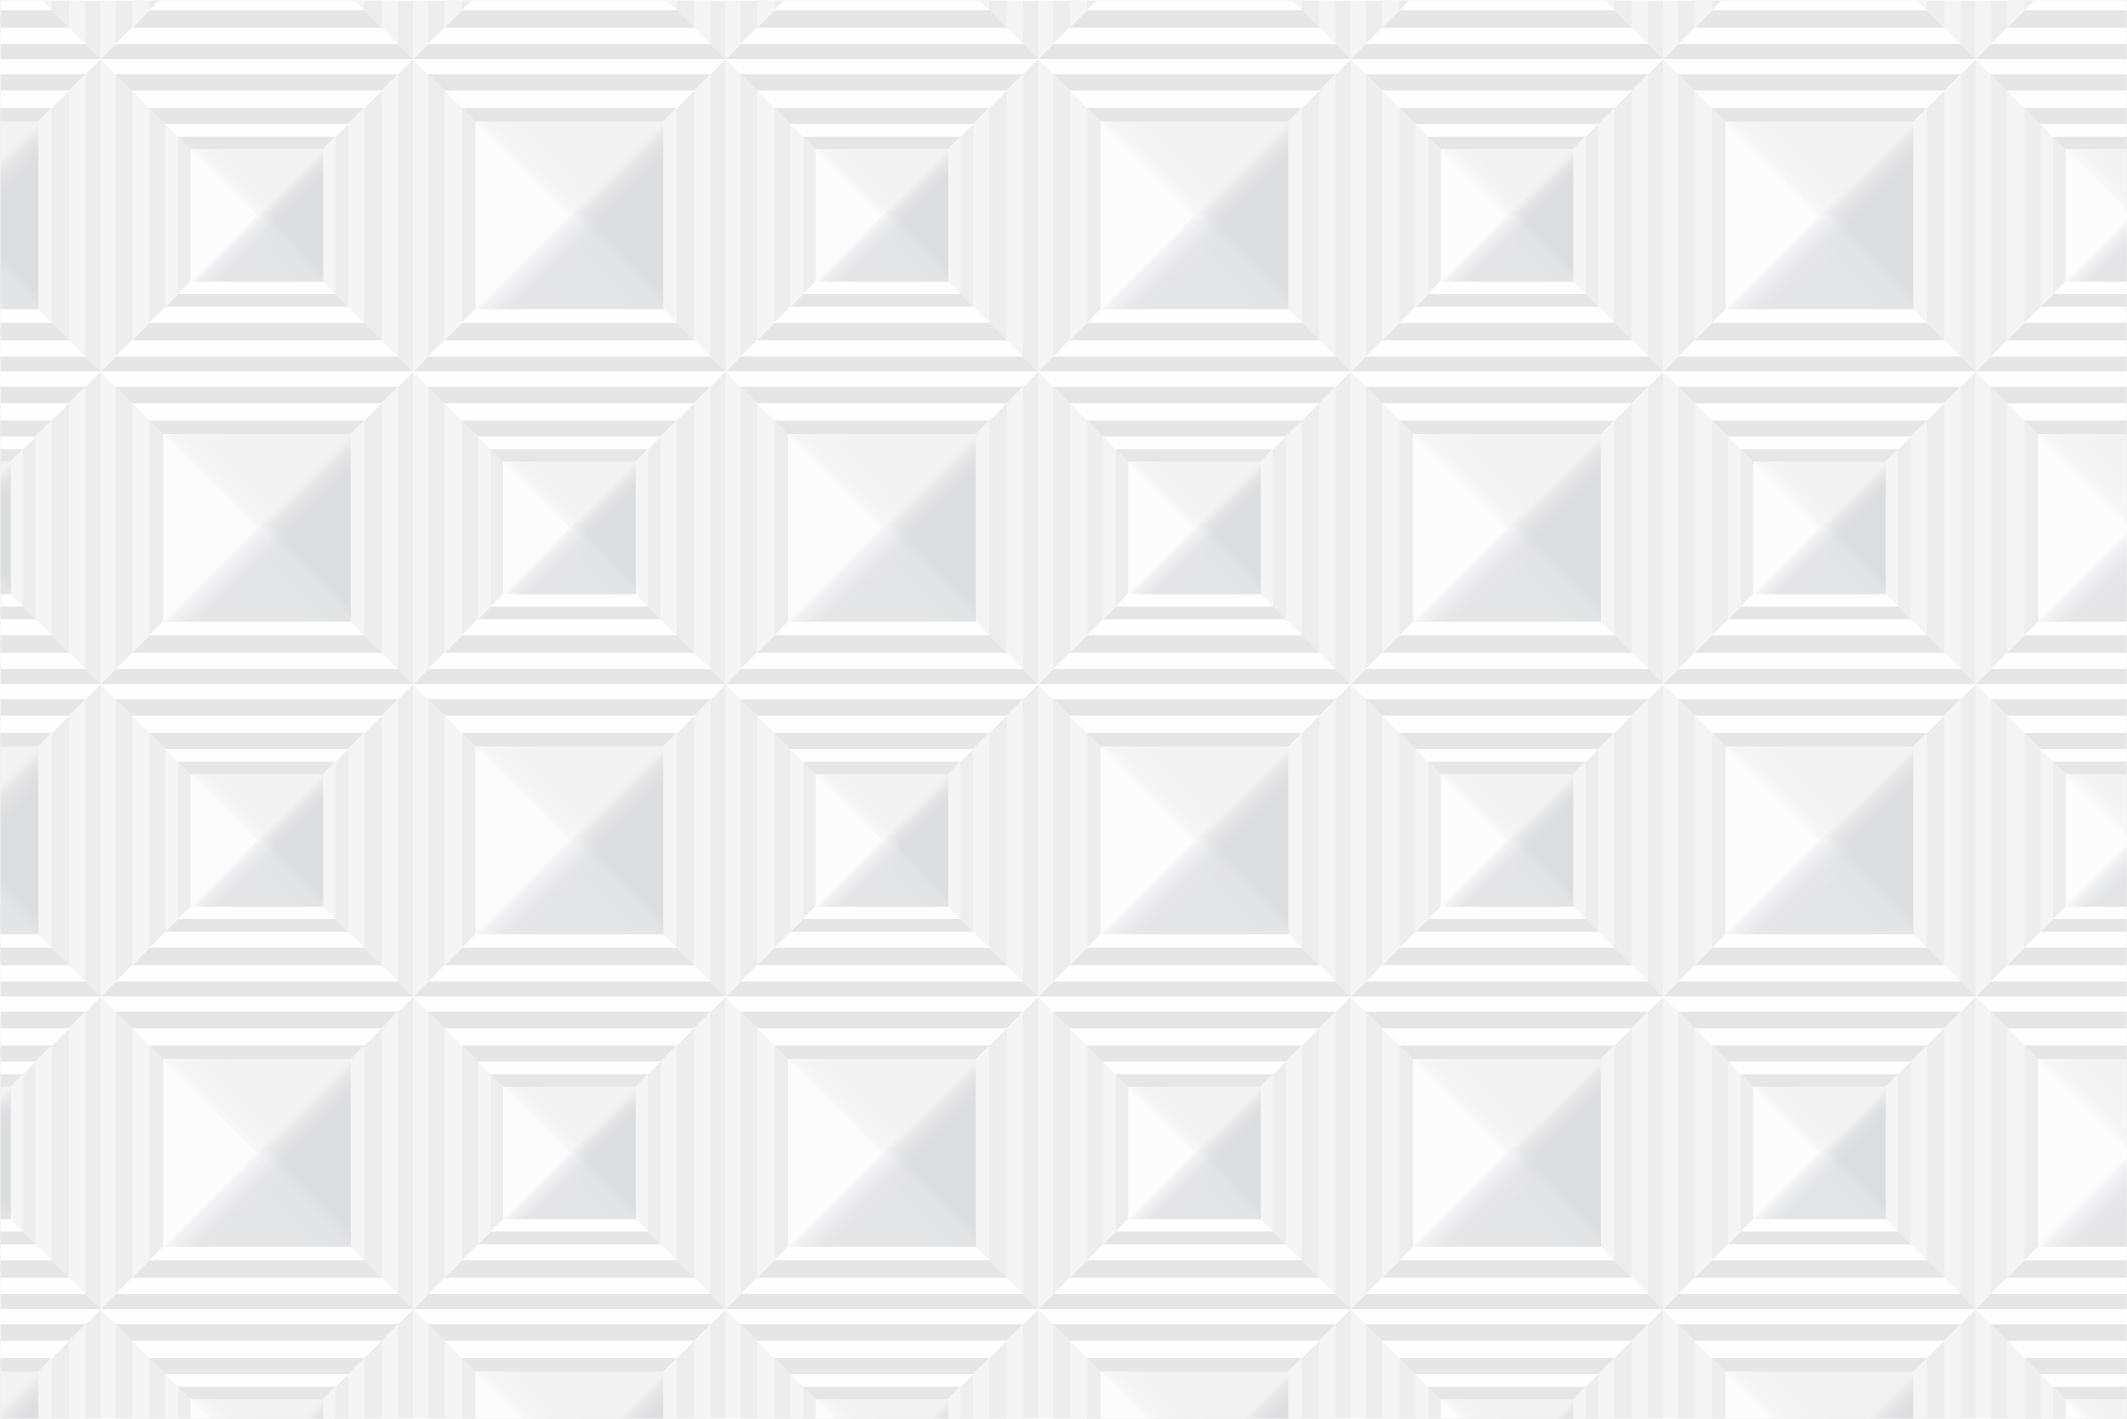 White and gray tile textures set example image 5